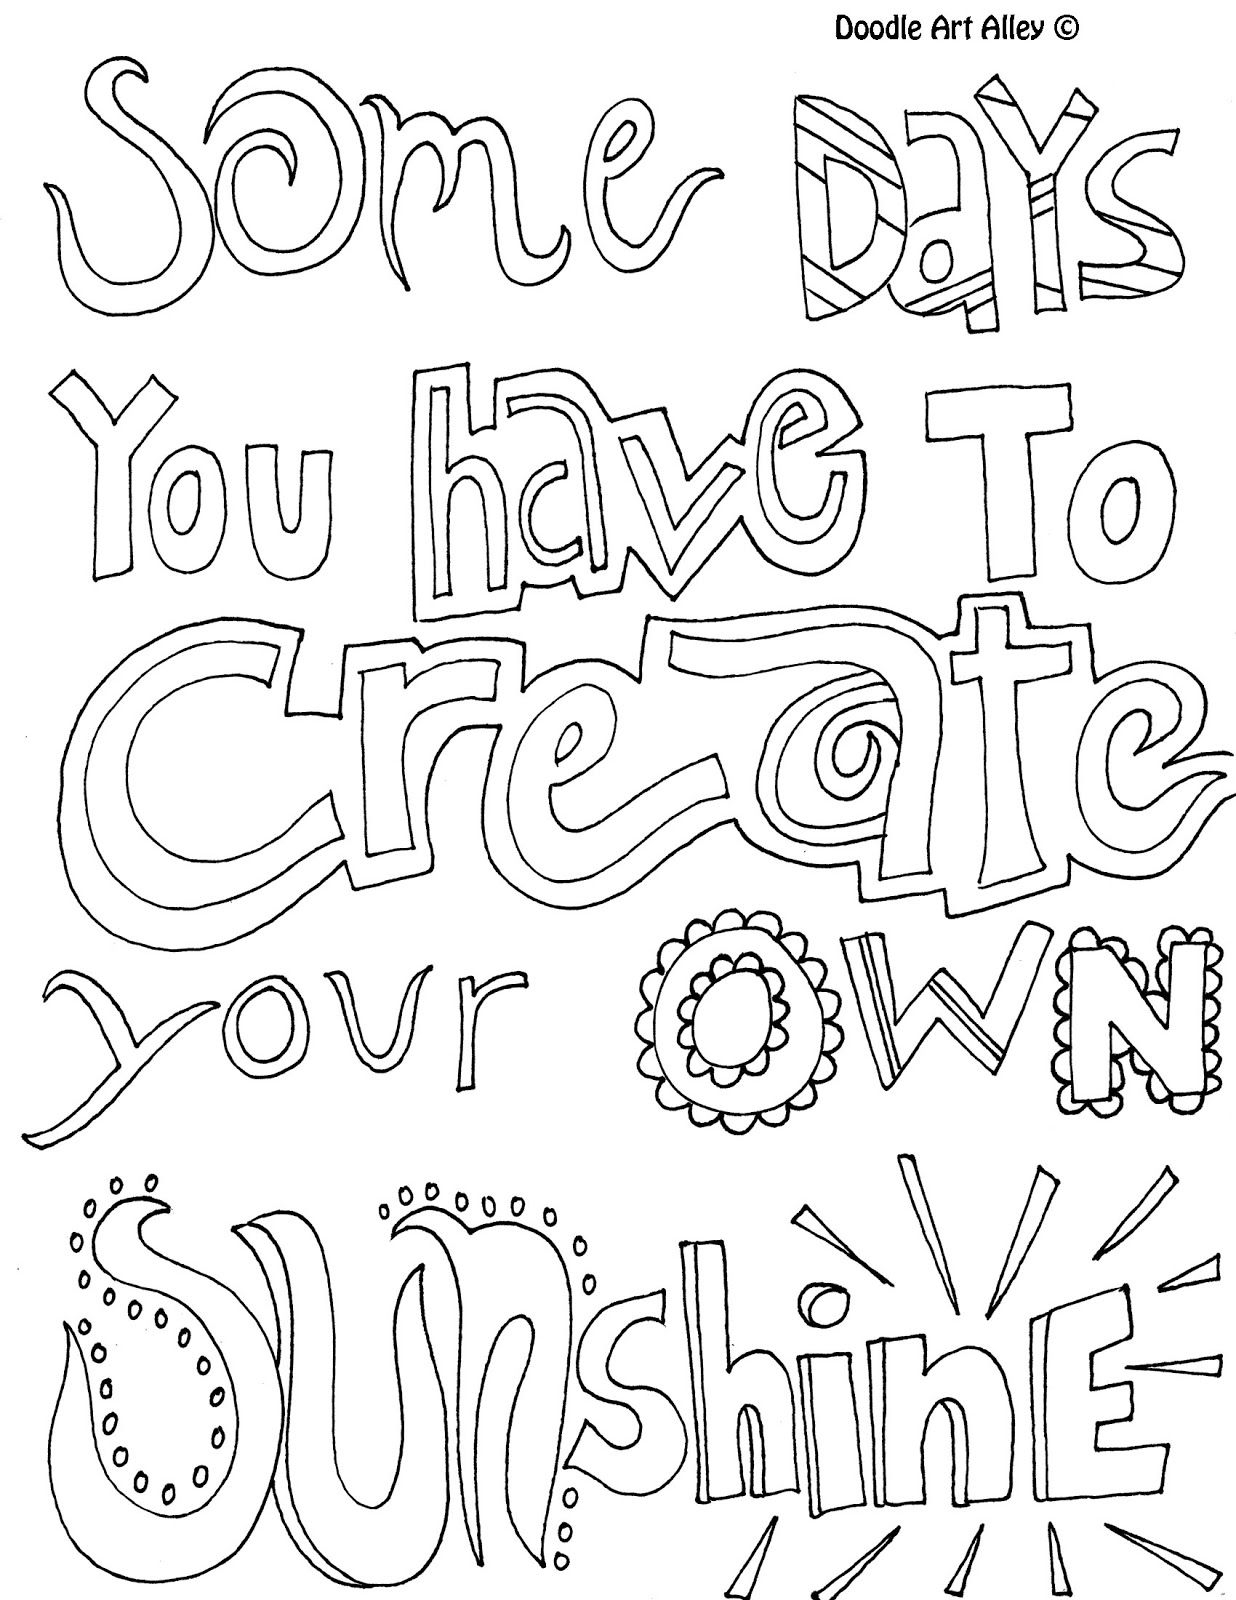 All Quotes Coloring Pages Great Quotes Doodle Page Great to Use Printable Of Free Printable Quote Coloring Pages for Grown Ups Download